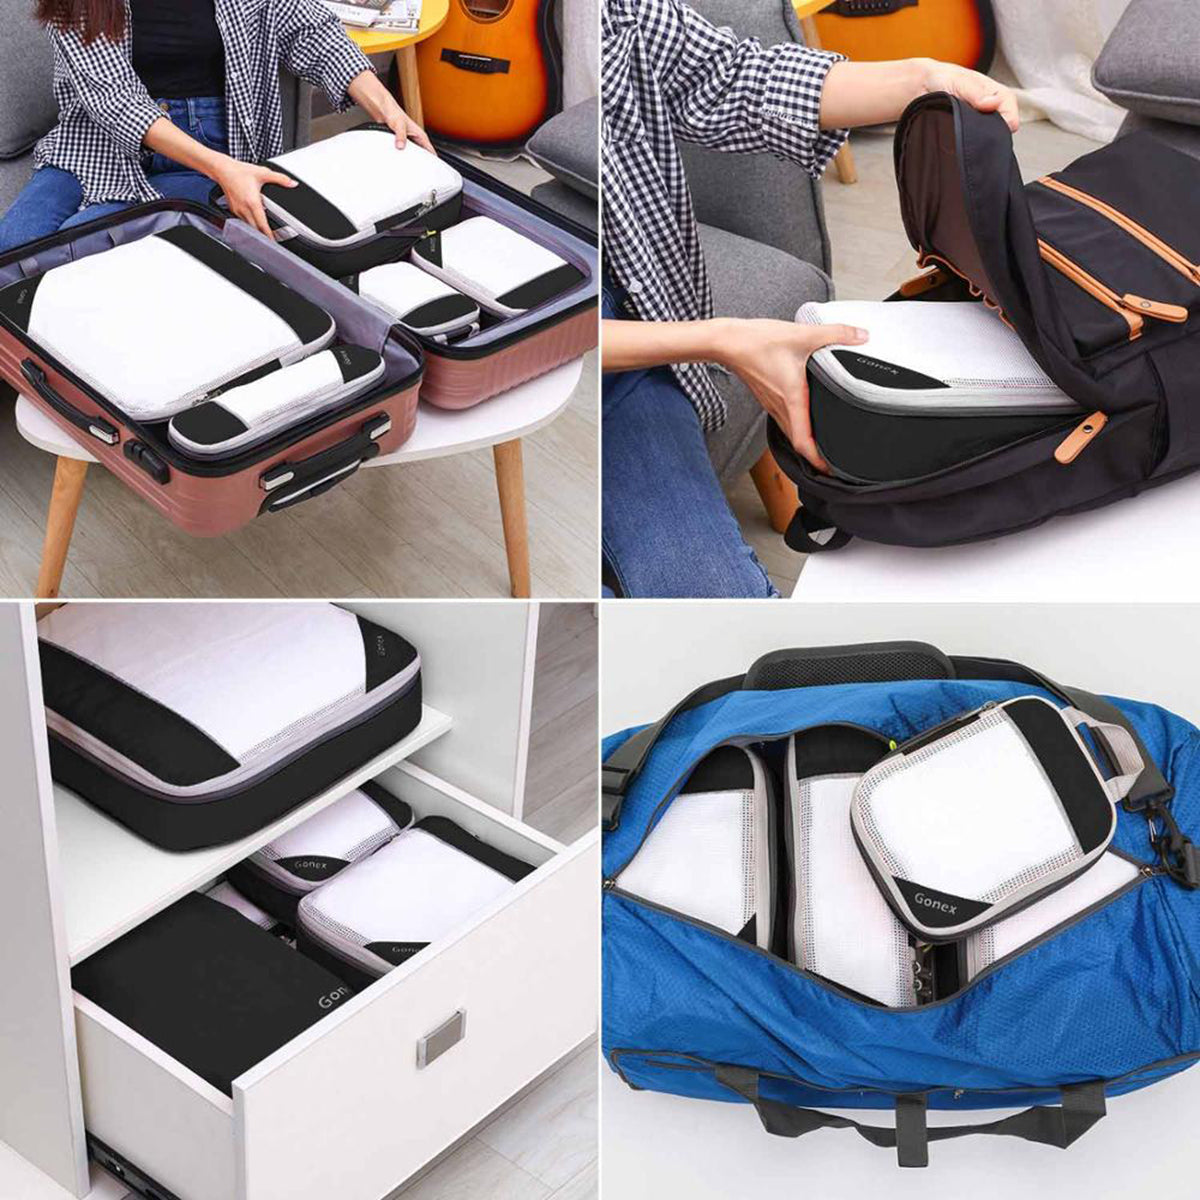 Hanging Compression Packing Travel Luggage Bags